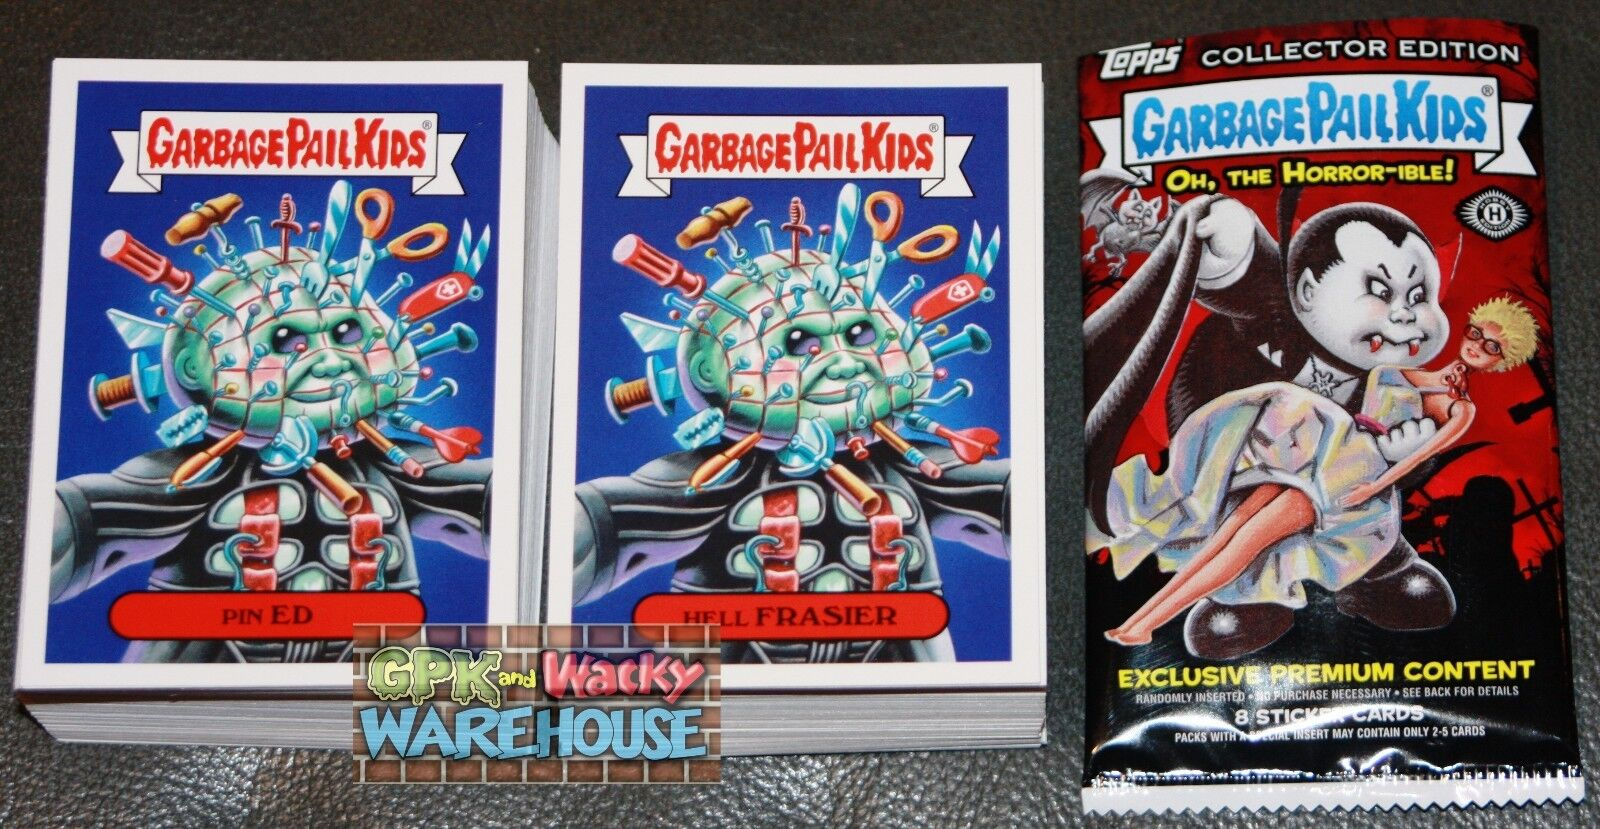 e9dac3ae701 2018 GARBAGE PAIL KIDS OH THE HORROR-IBLE COMPLETE SET 200 CARDS + FREE  WRAPPER